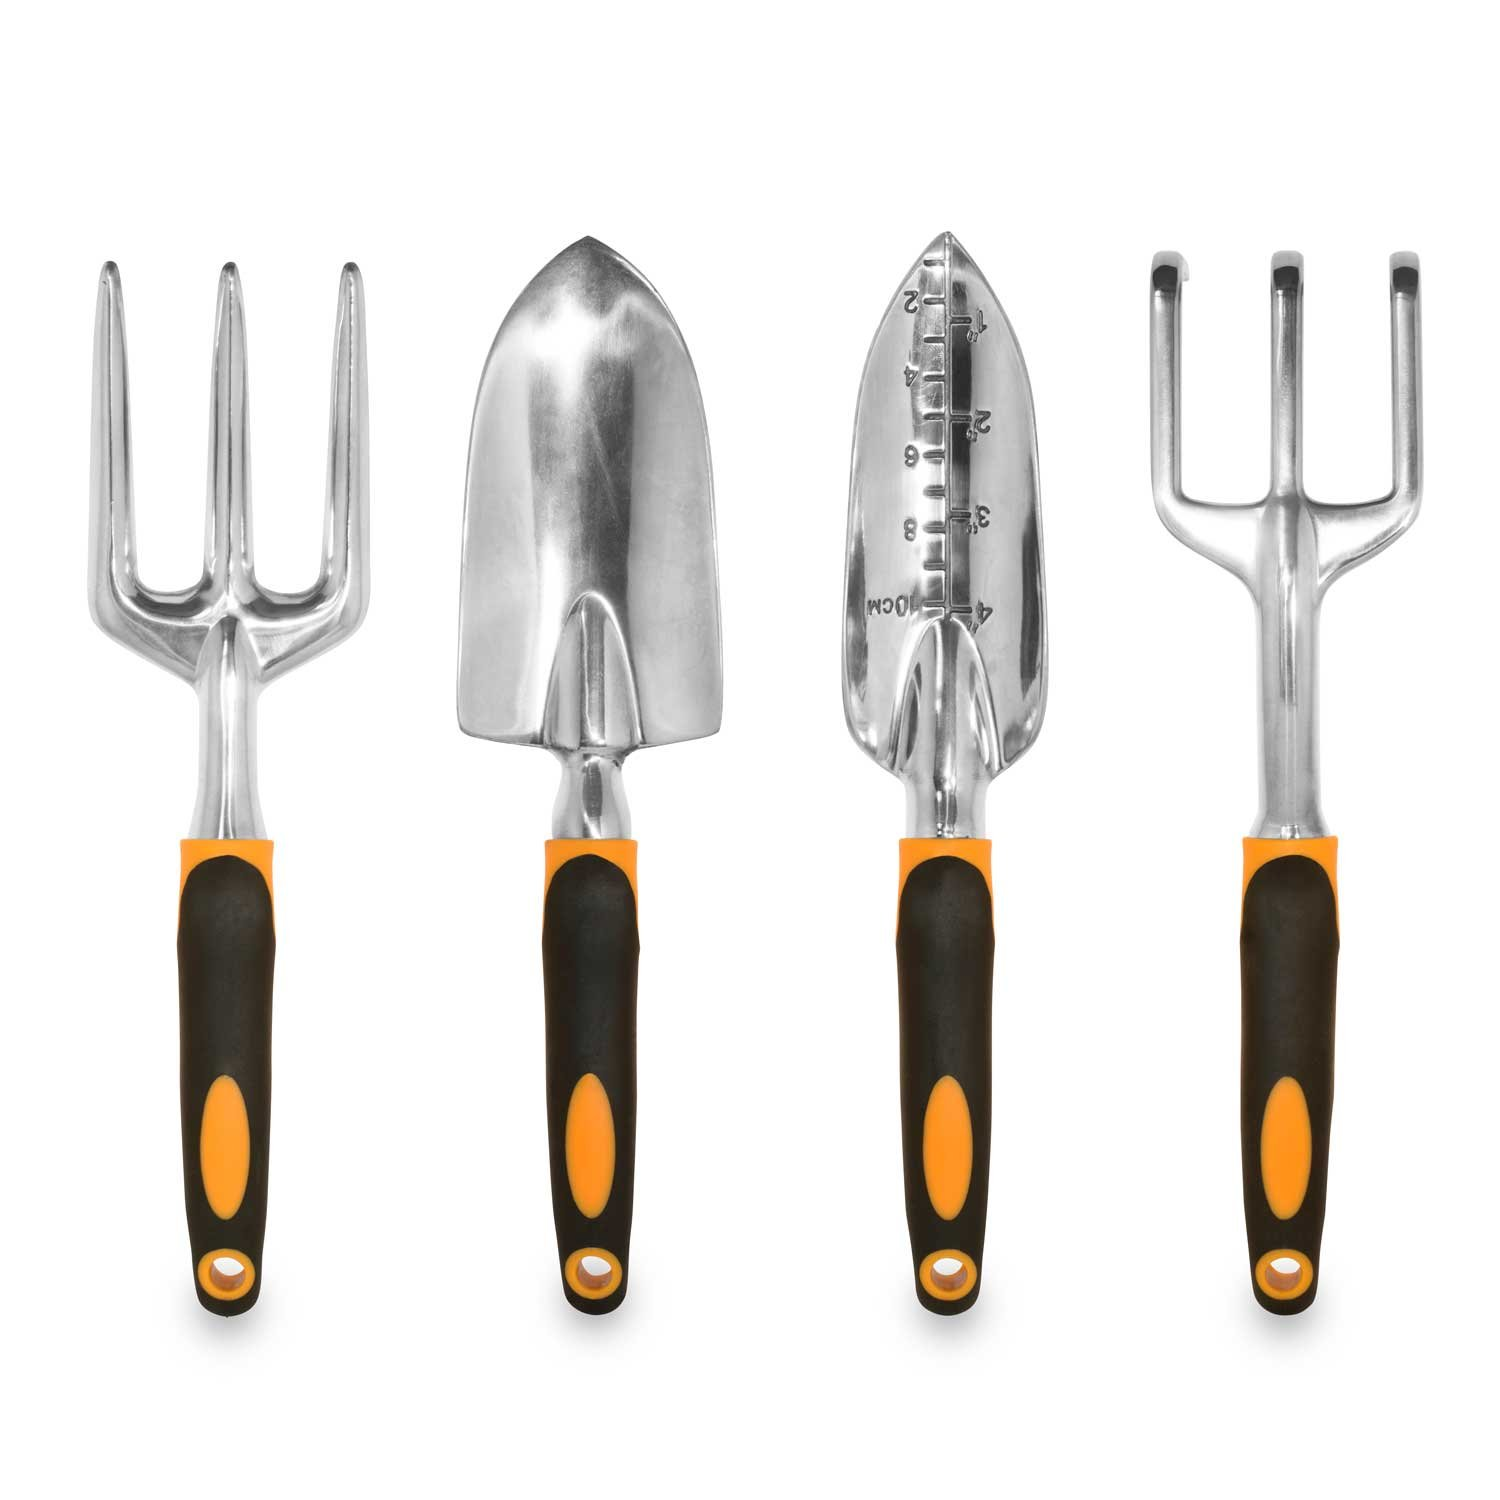 Gardenhome ergonomic garden tools 4 piece tool set ebay for Hand tools for planting